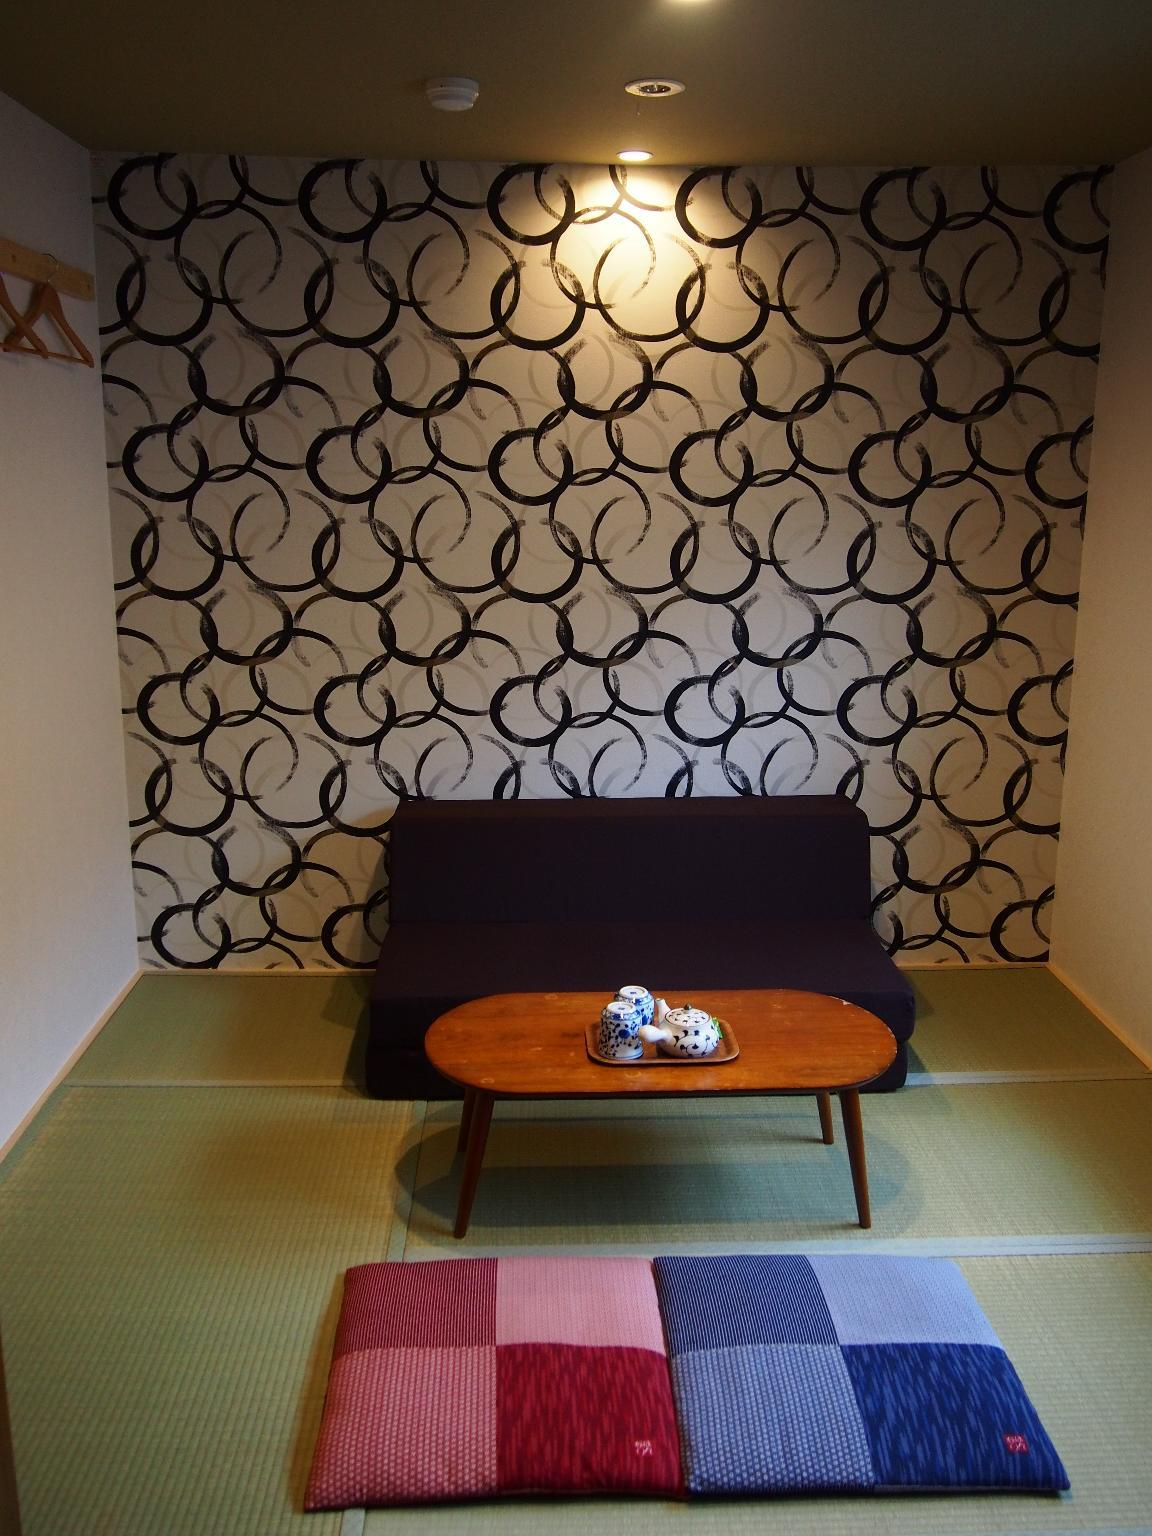 日式客房(兩床) - 需共用衛浴 (Japanese Style Twin Room with Shared Bathroom)